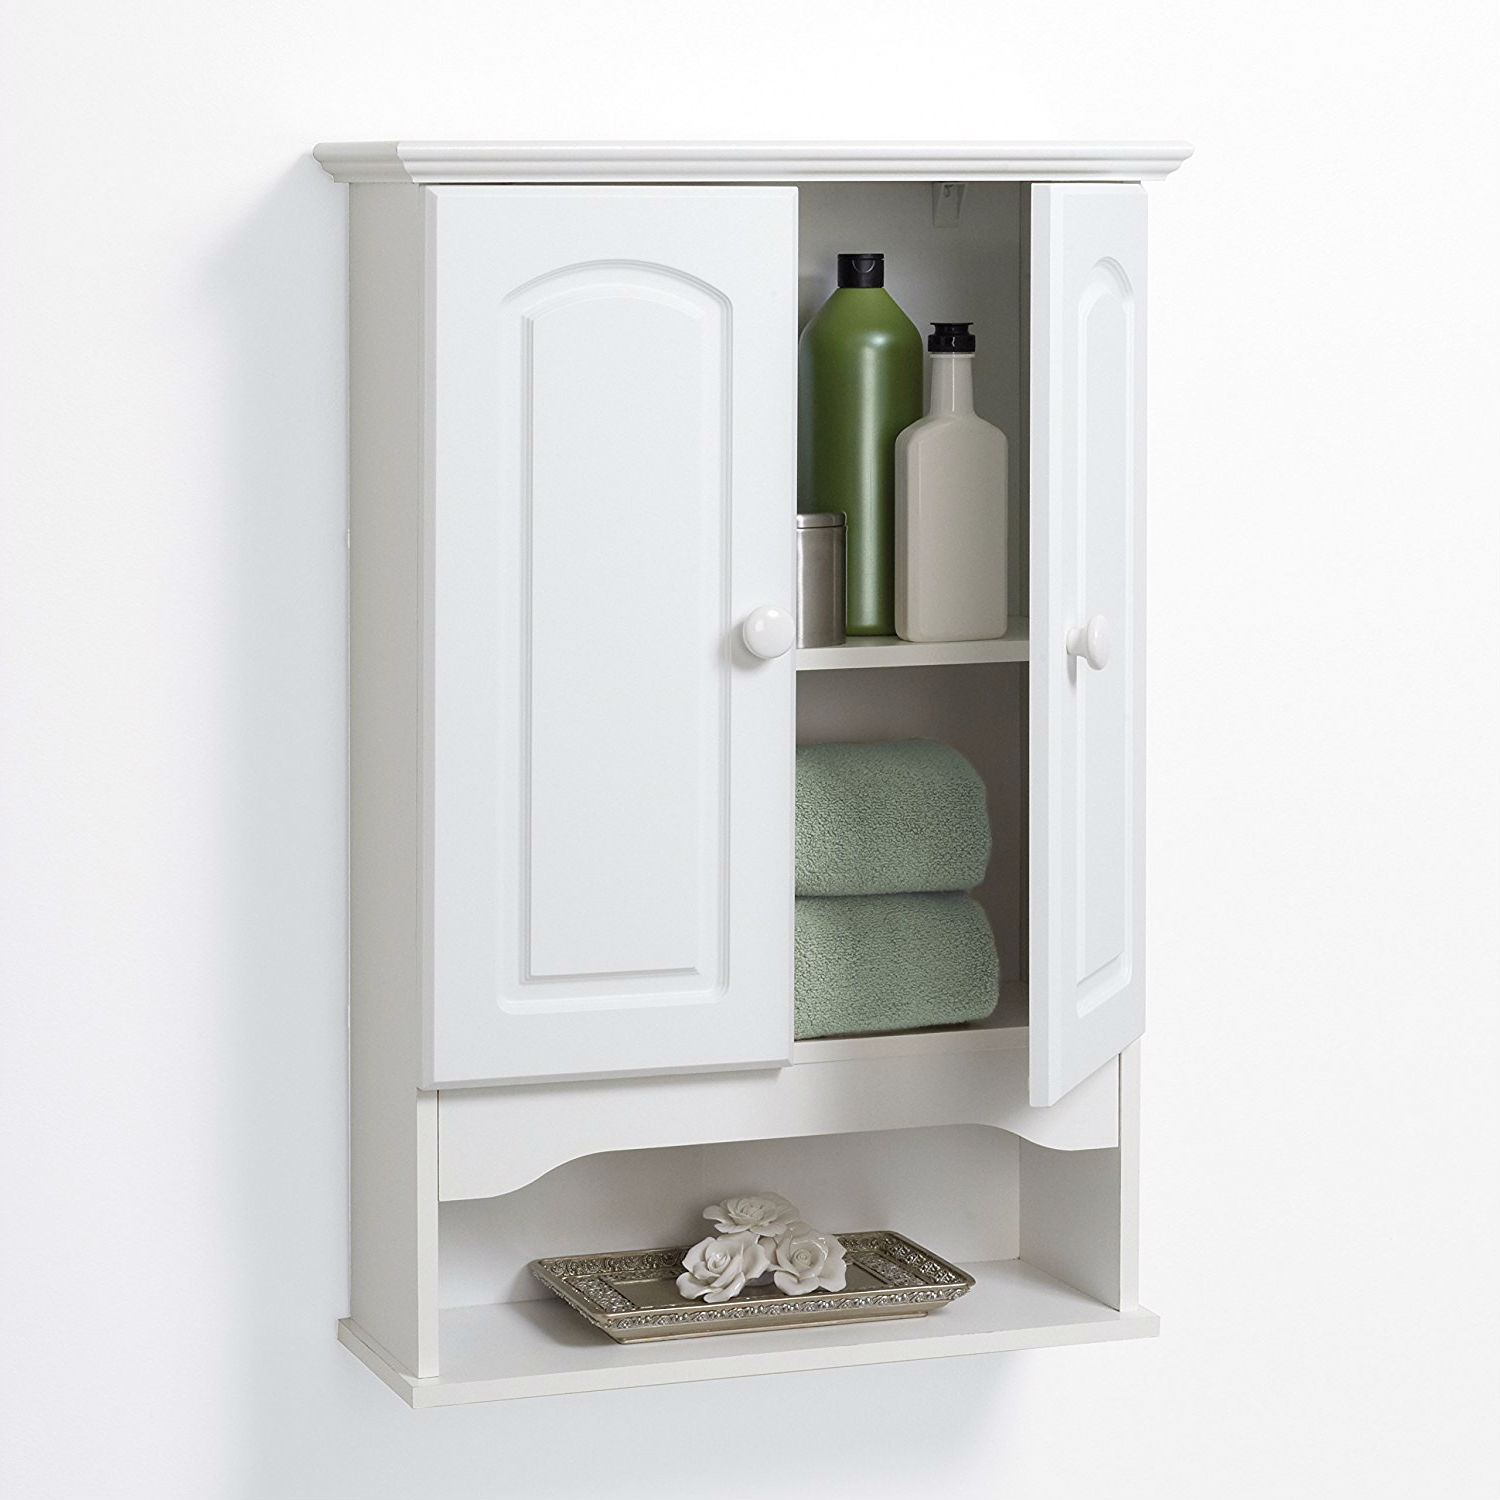 White 2 Door Bathroom Wall Cabinet With Open Storage Shelf